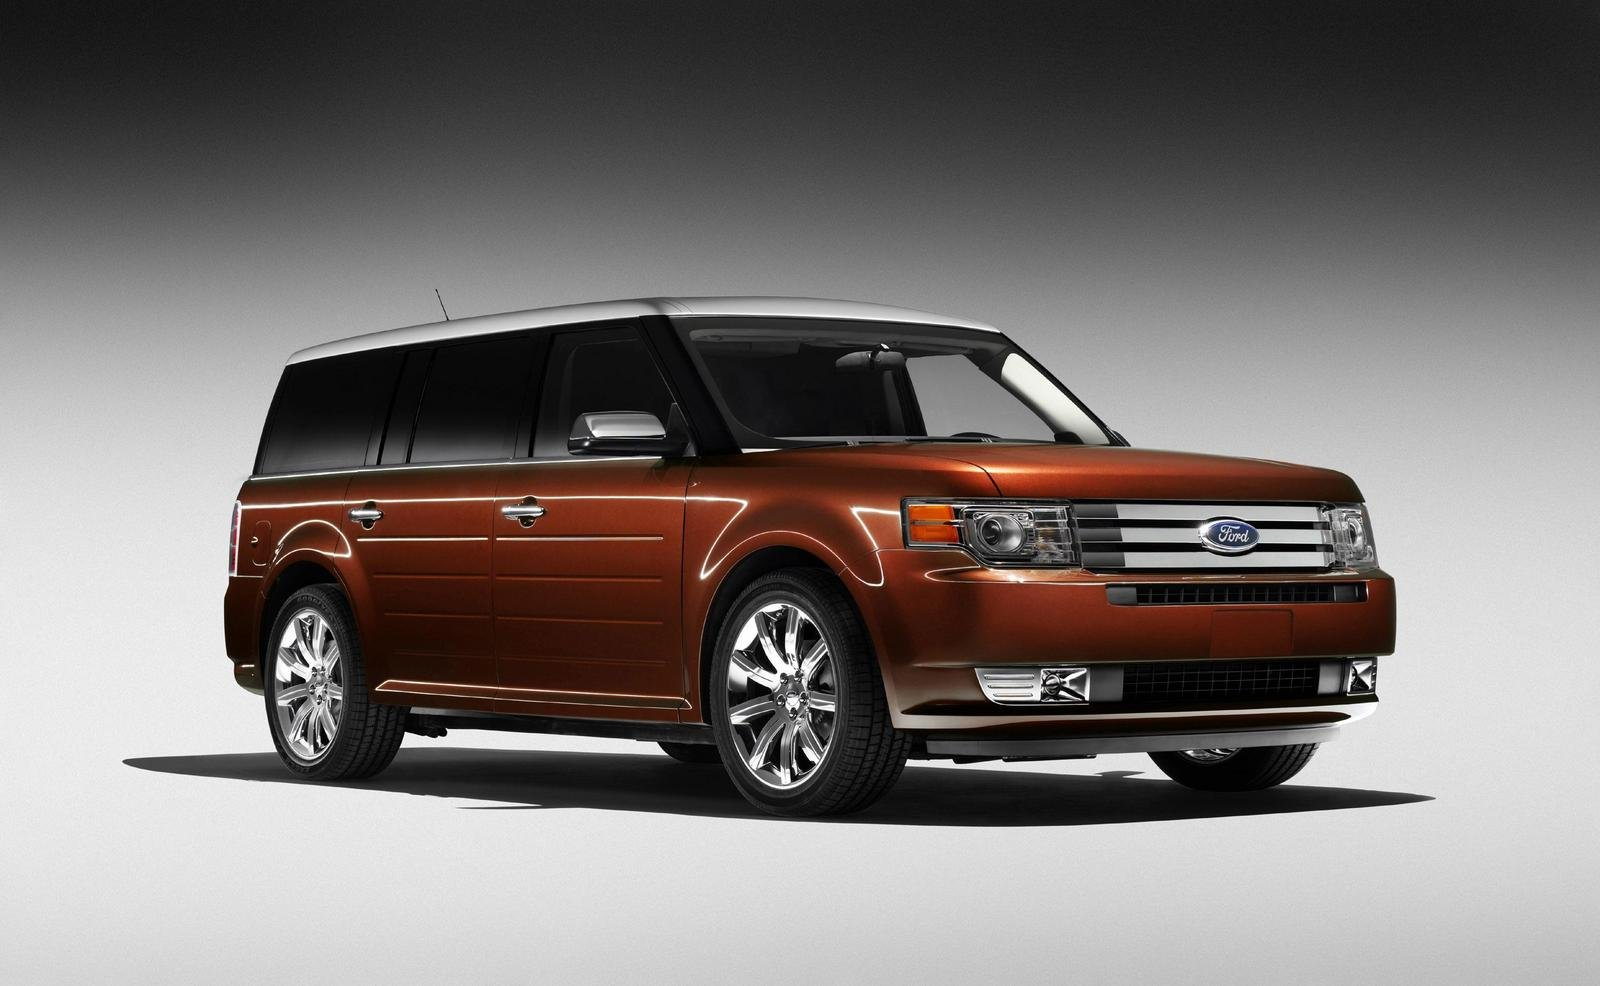 2009 Ford Flex Review - Top Speed